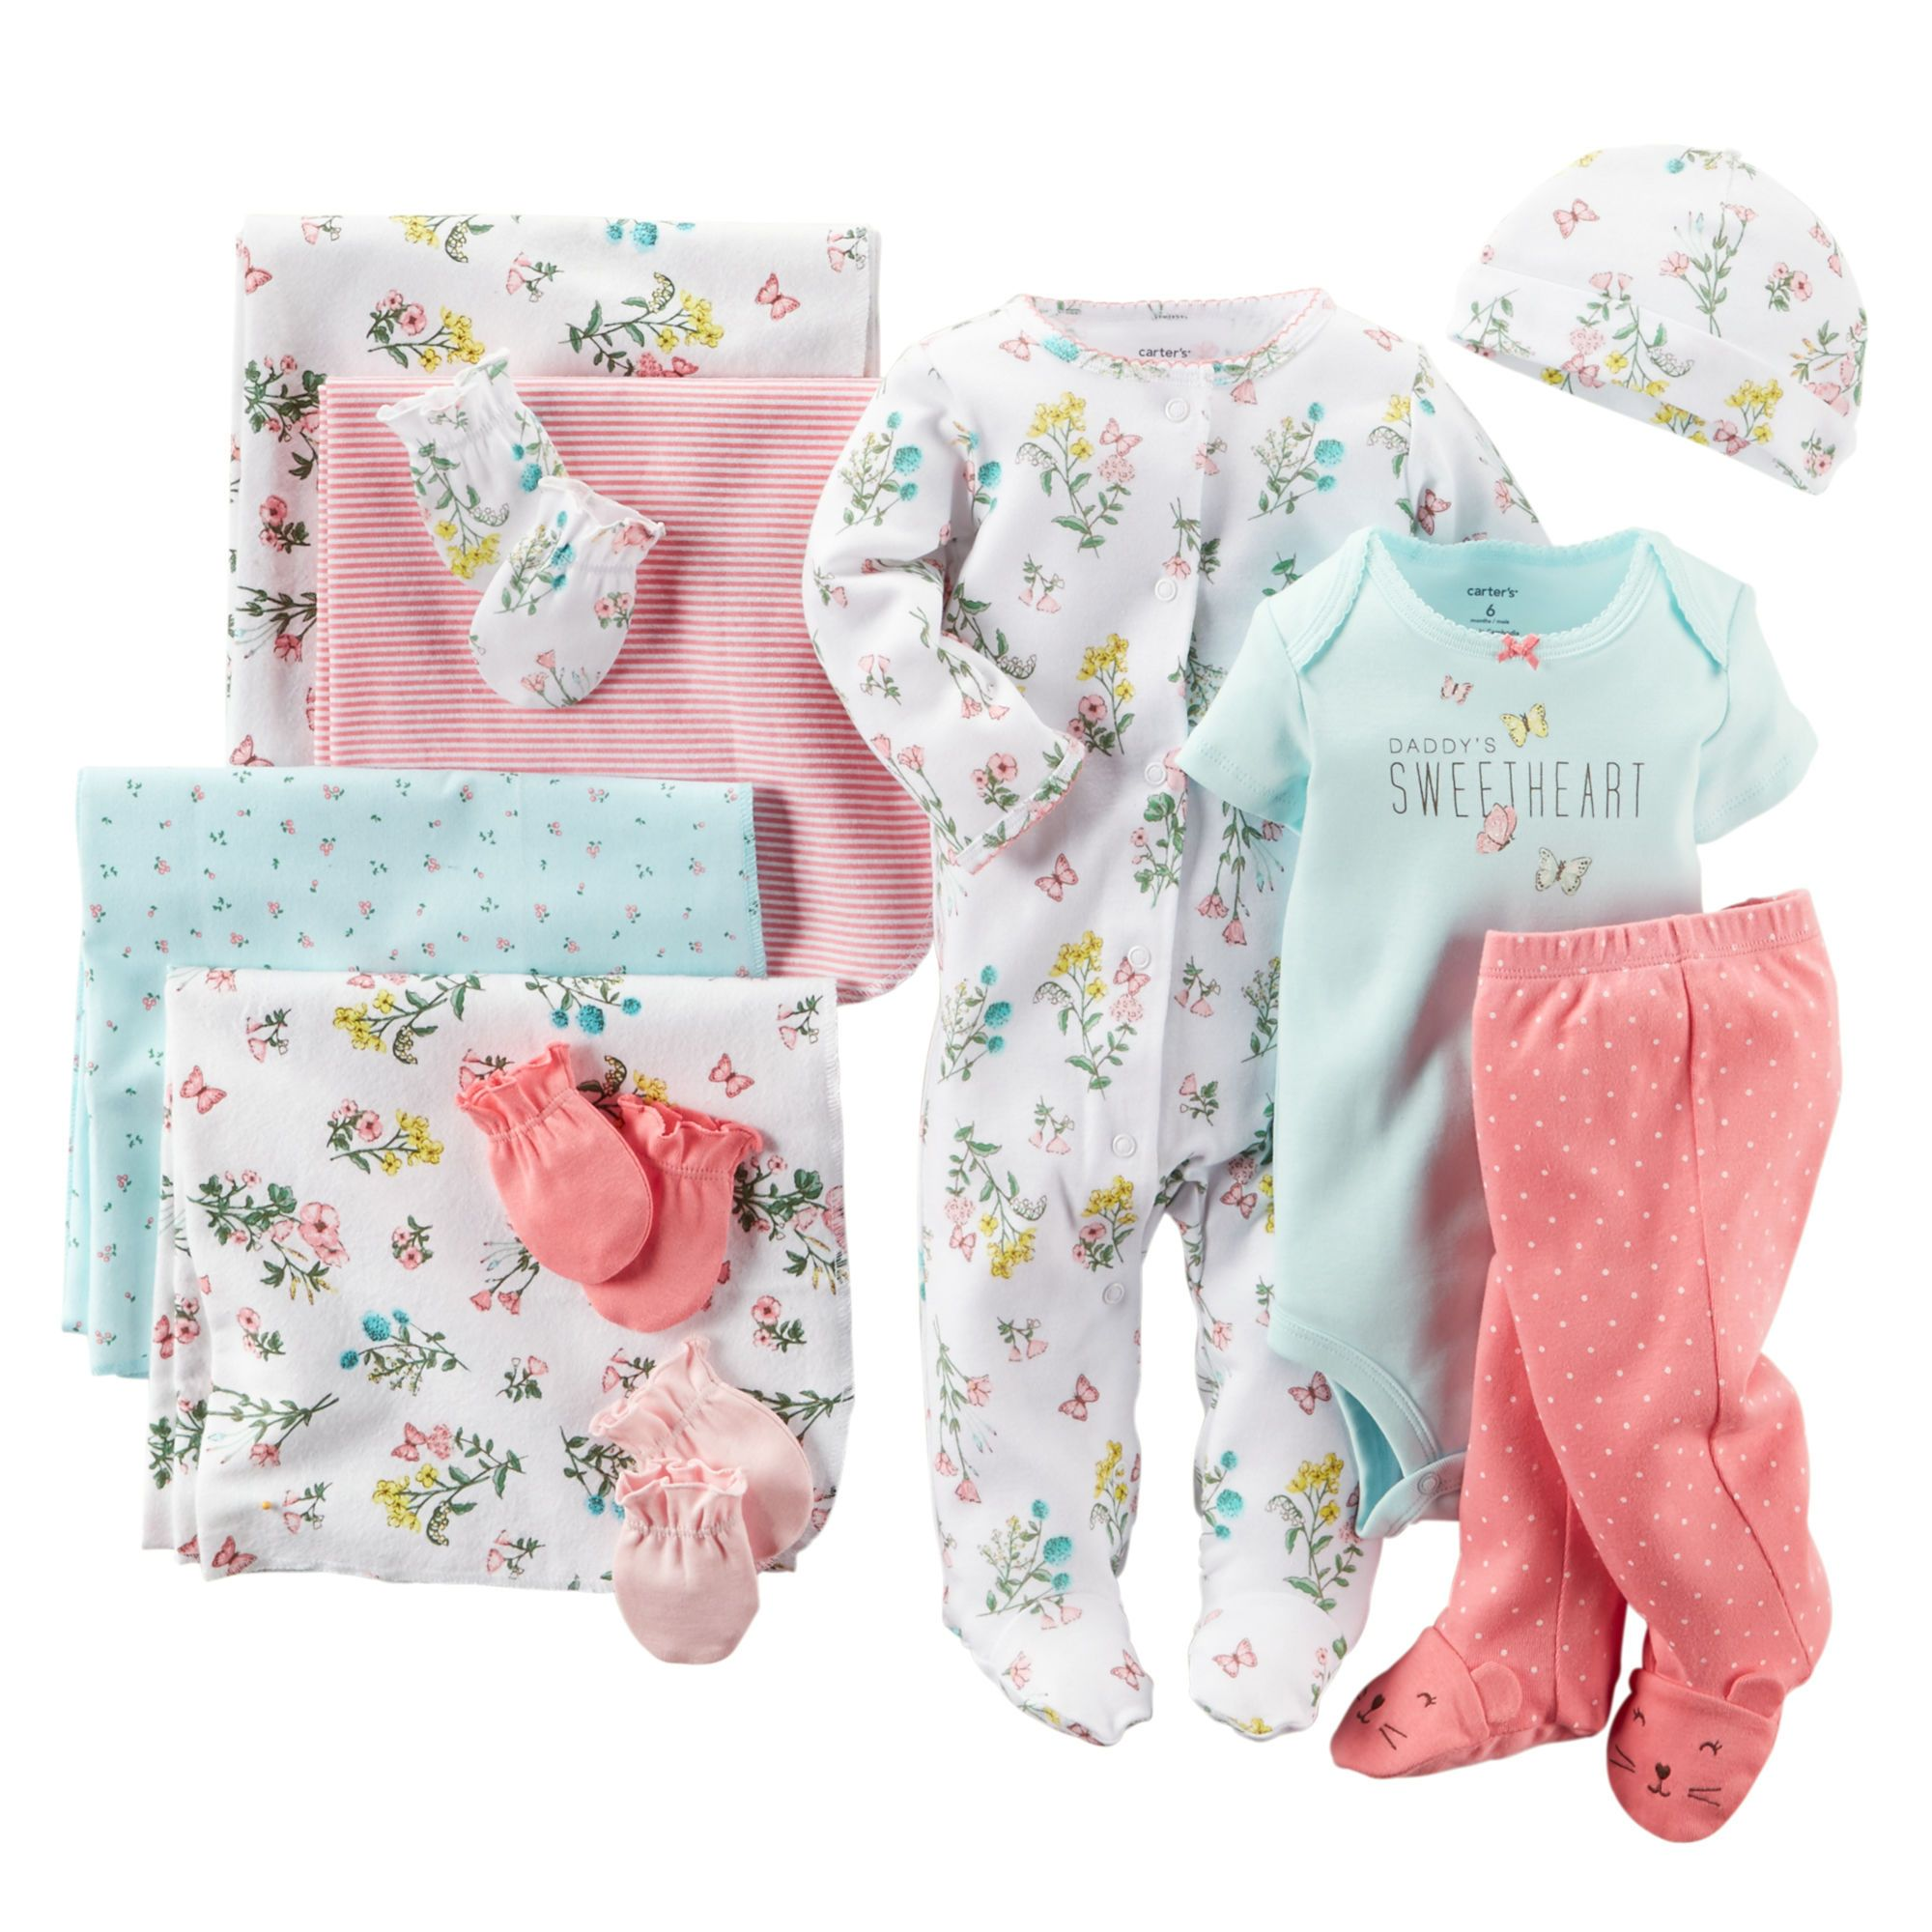 Little Flowers 10-Piece Gift Set